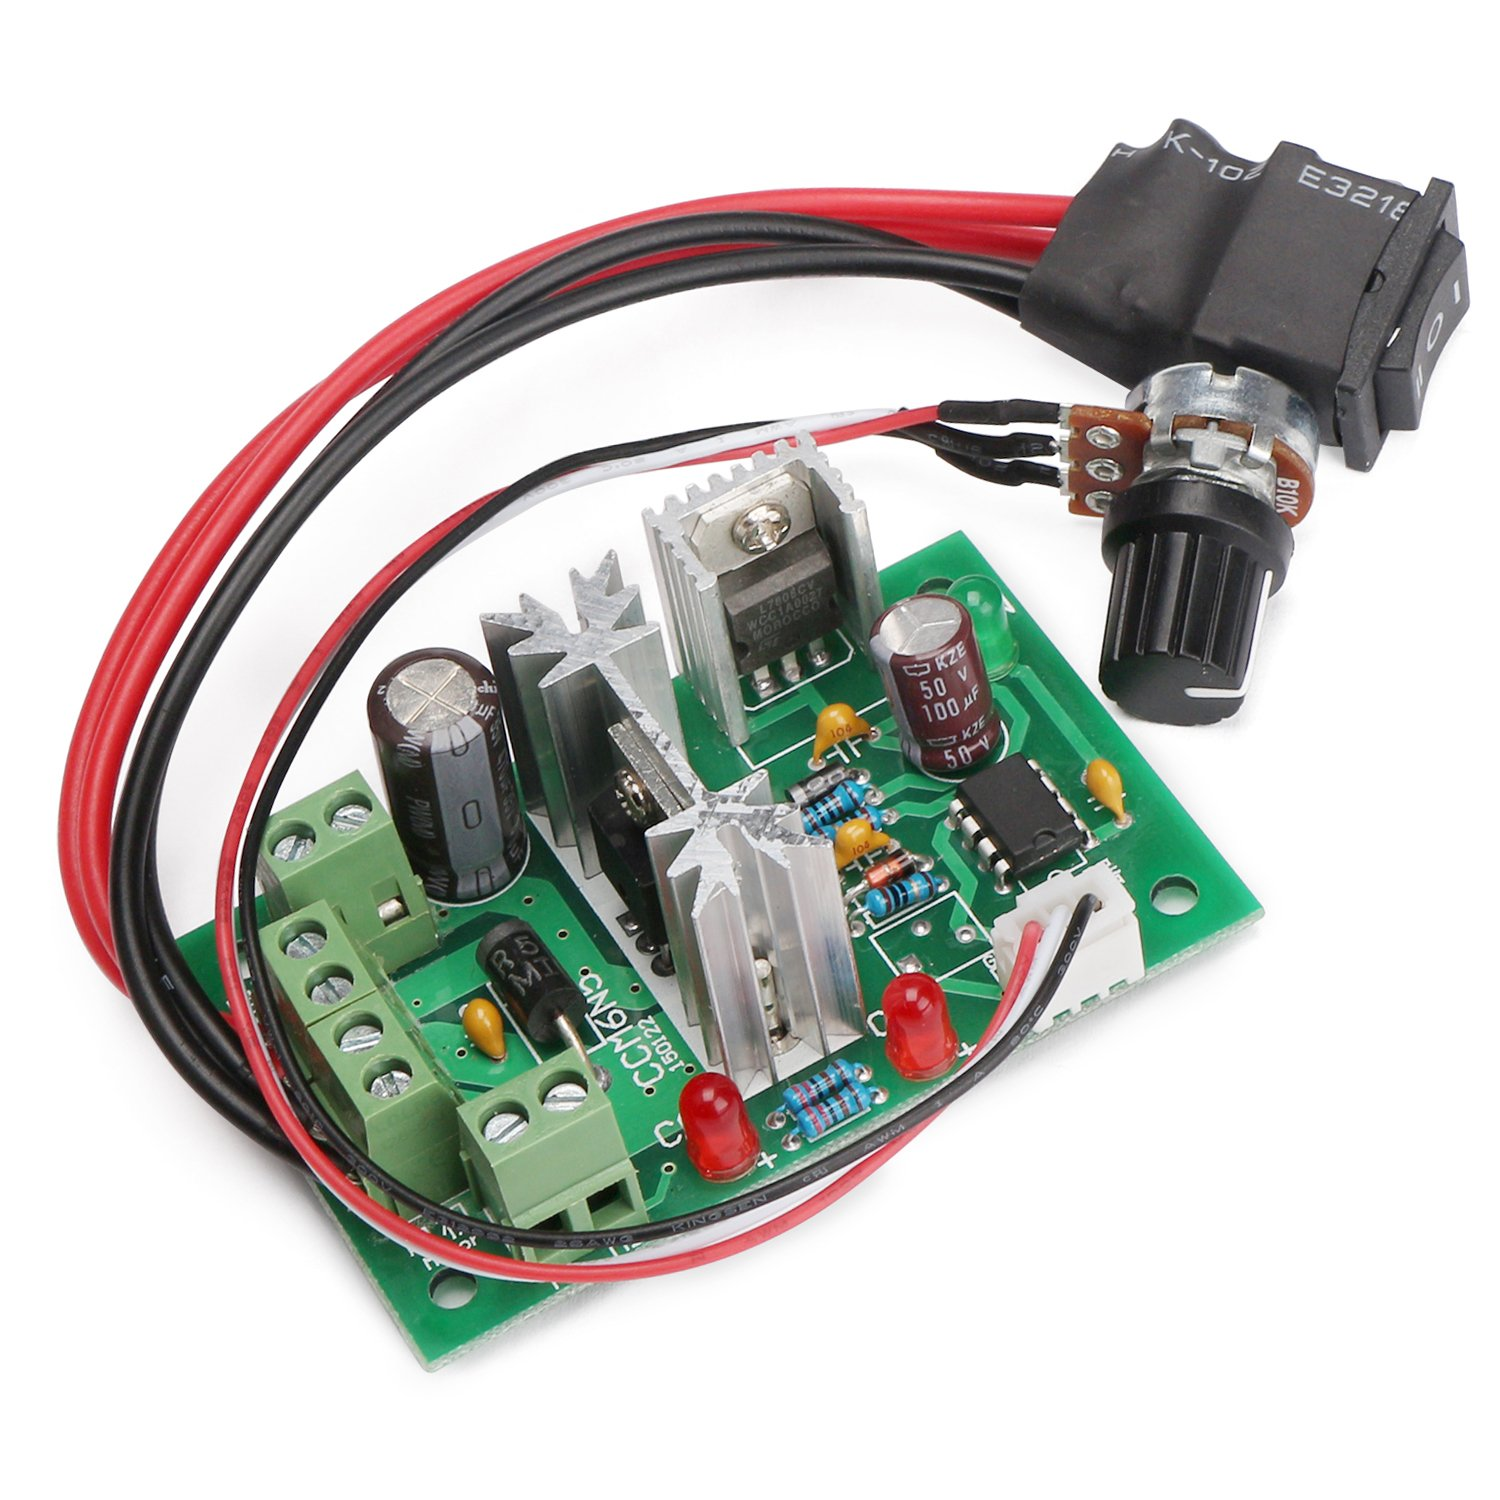 Drok Dc Motor Speed Control 6v 30v 10a 200w Pwm Controller 12v Based Using Microcontroller Circuit Diagram 24v Support Plc With Positive Inversion Switch Industrial